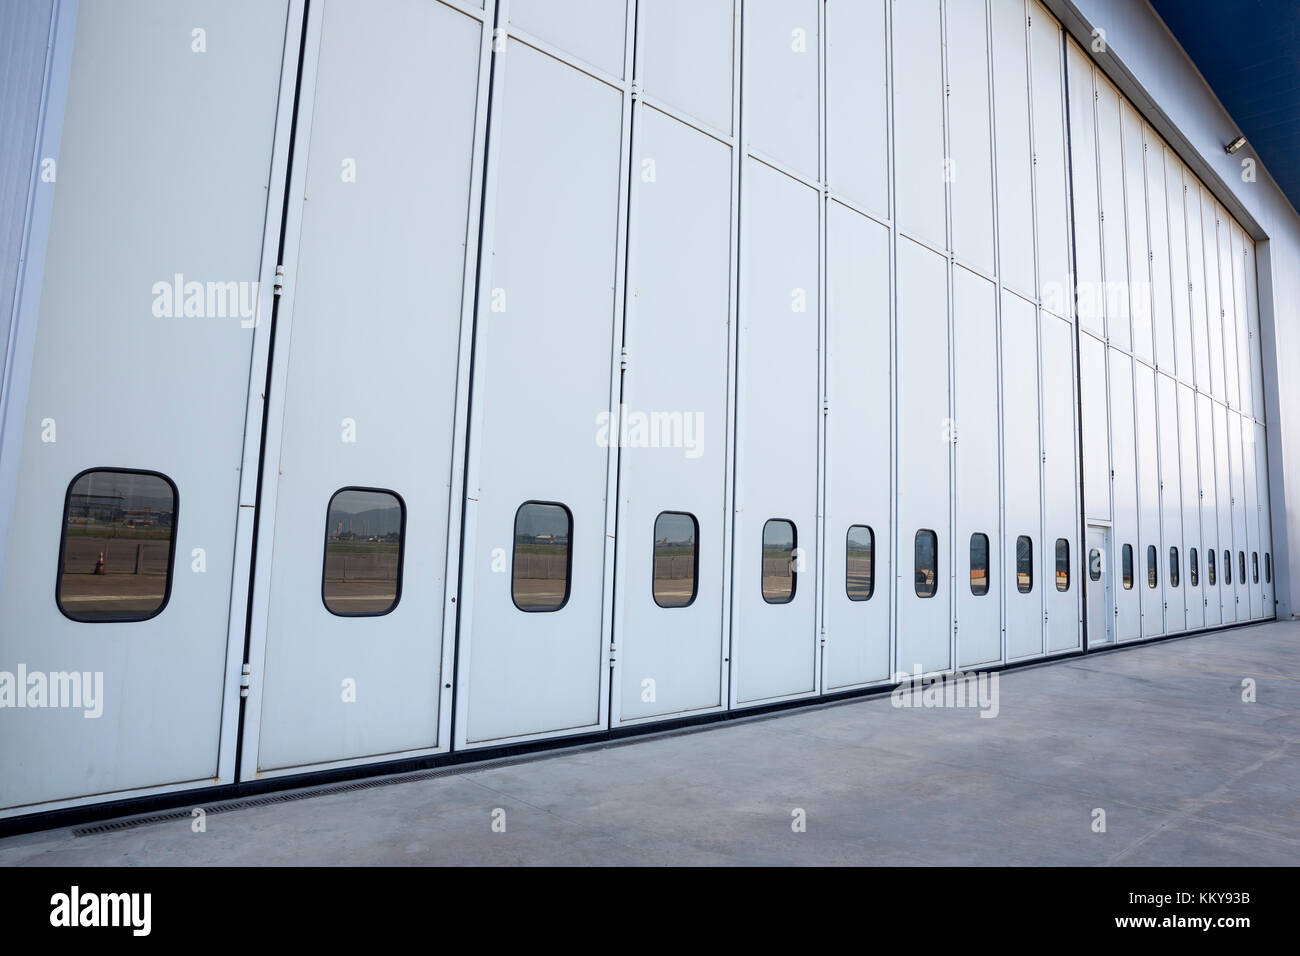 Airport hangar from the outside with big tall doors. Stock Photo